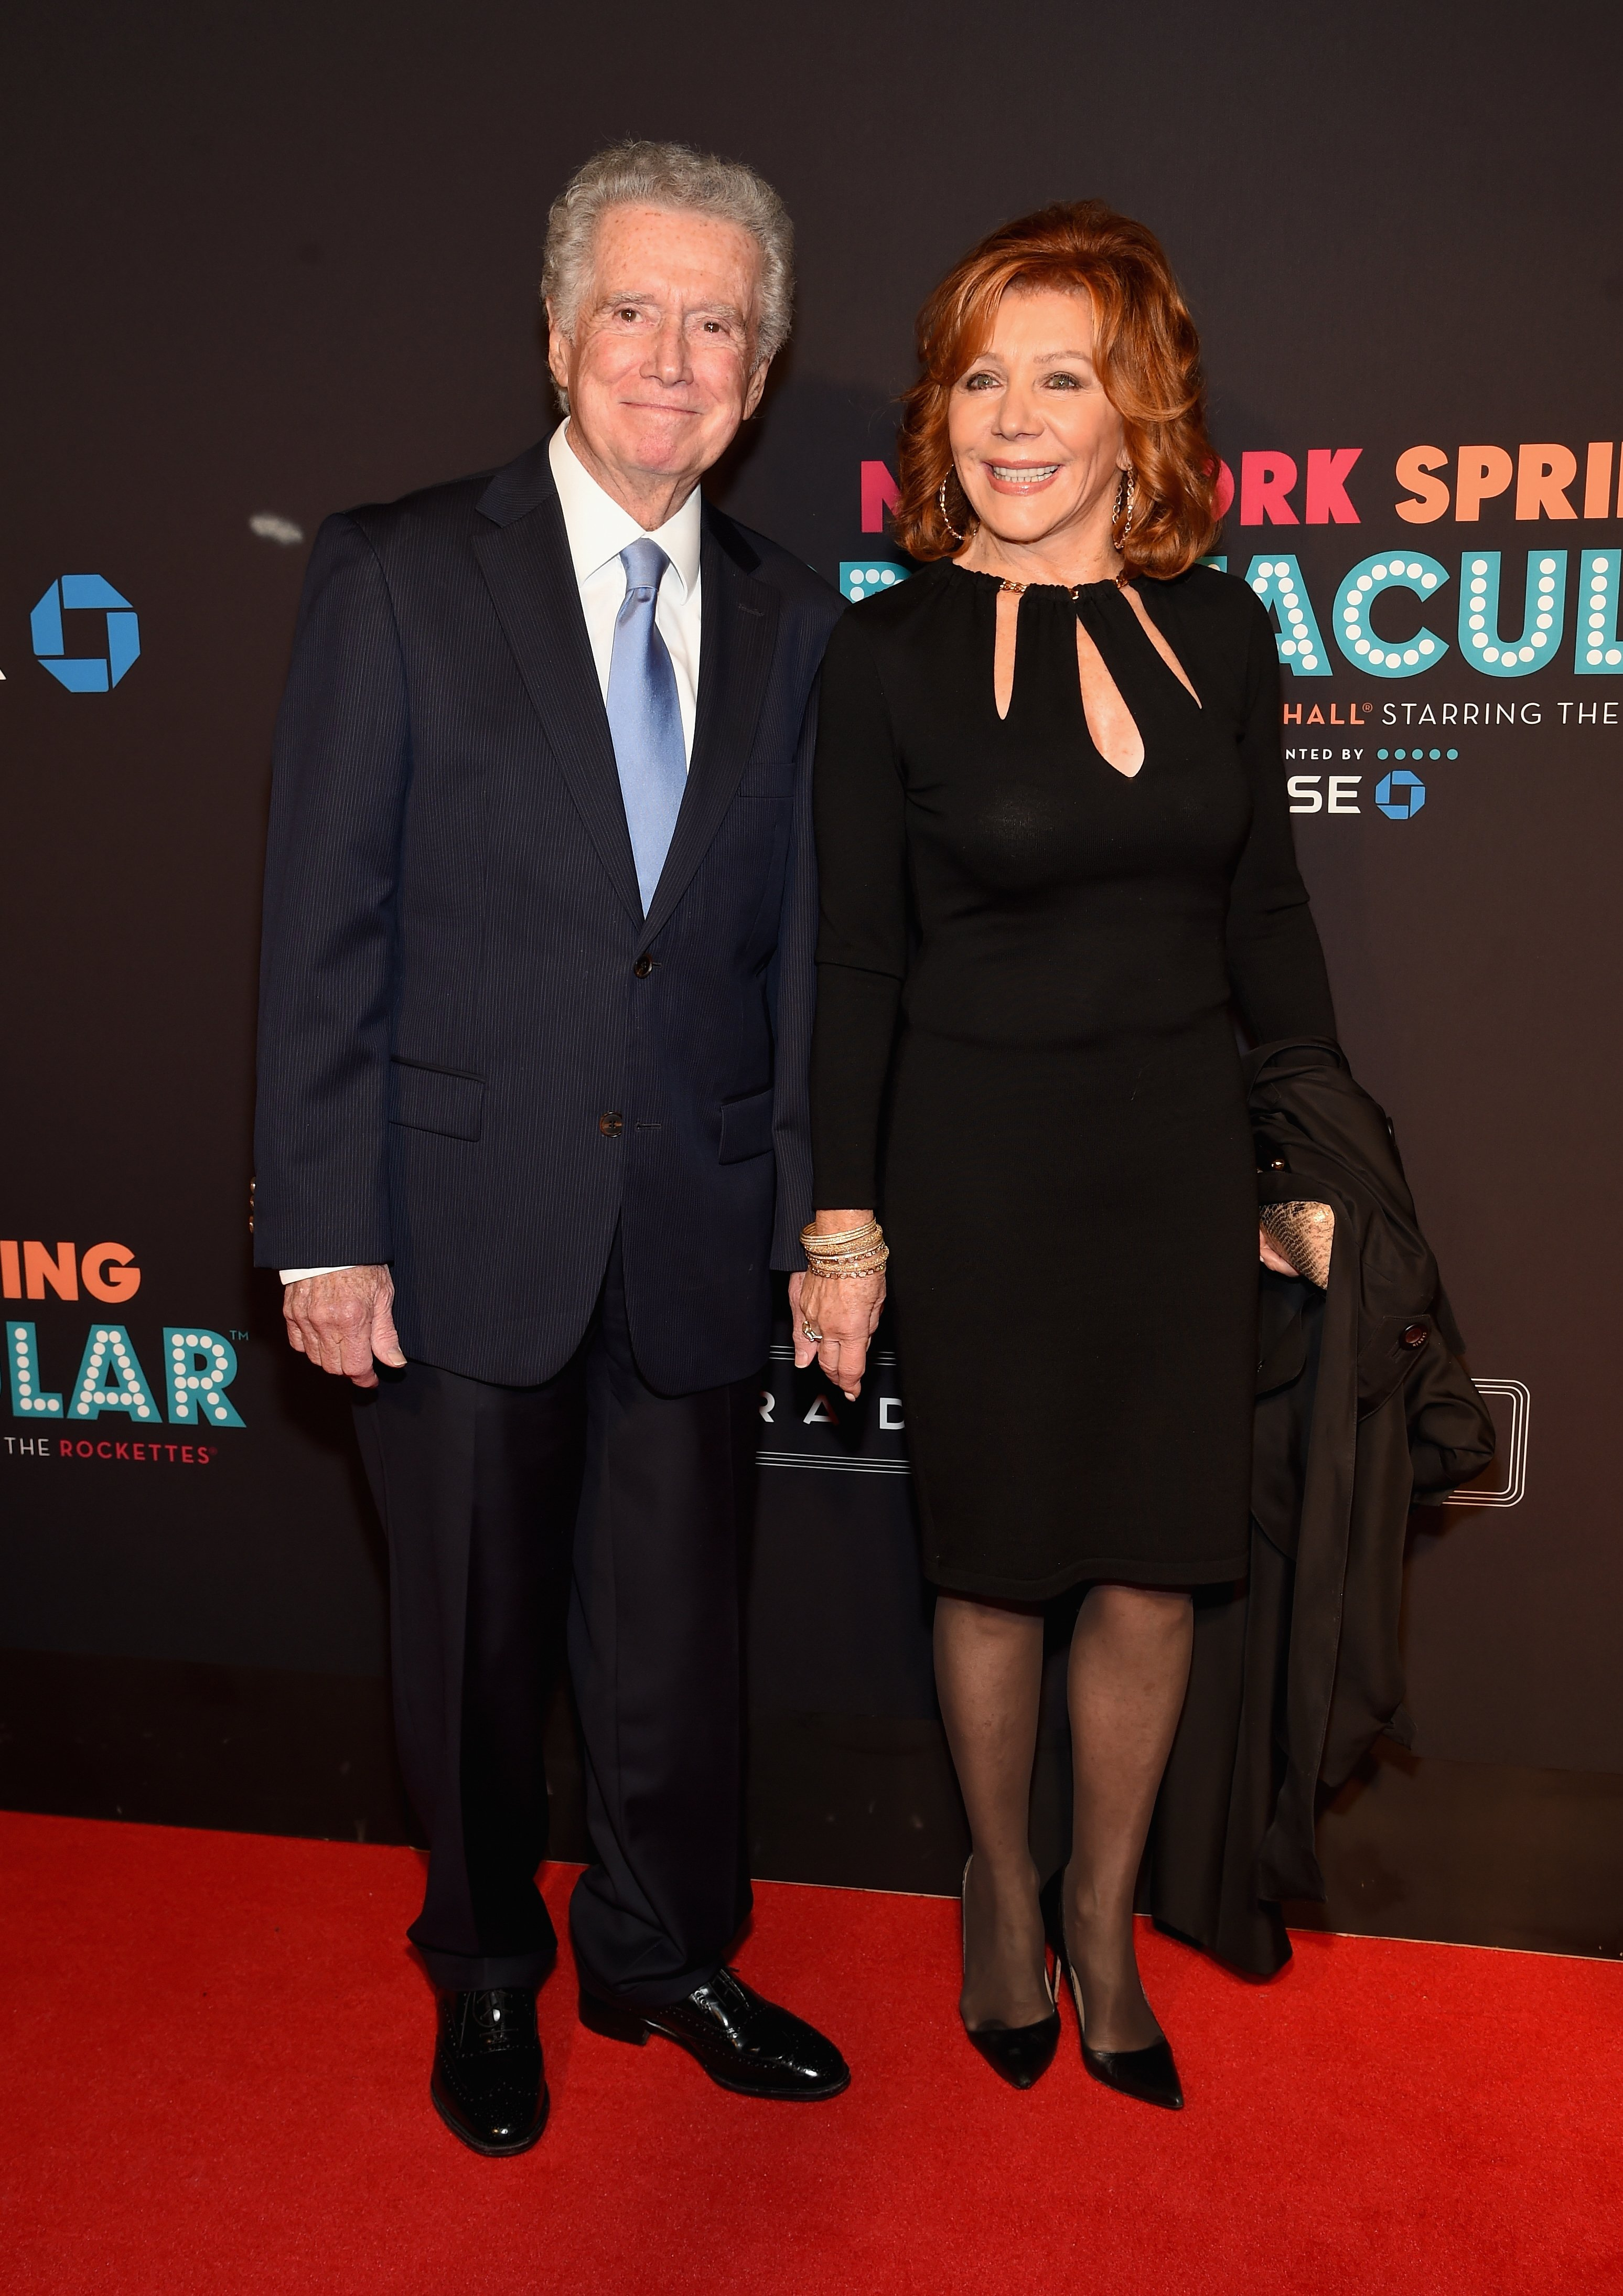 Regis Philbin and Joy Philbin attend the 2015 New York Spring Spectacular on March 26, 2015, in New York City. | Source: Getty Images.